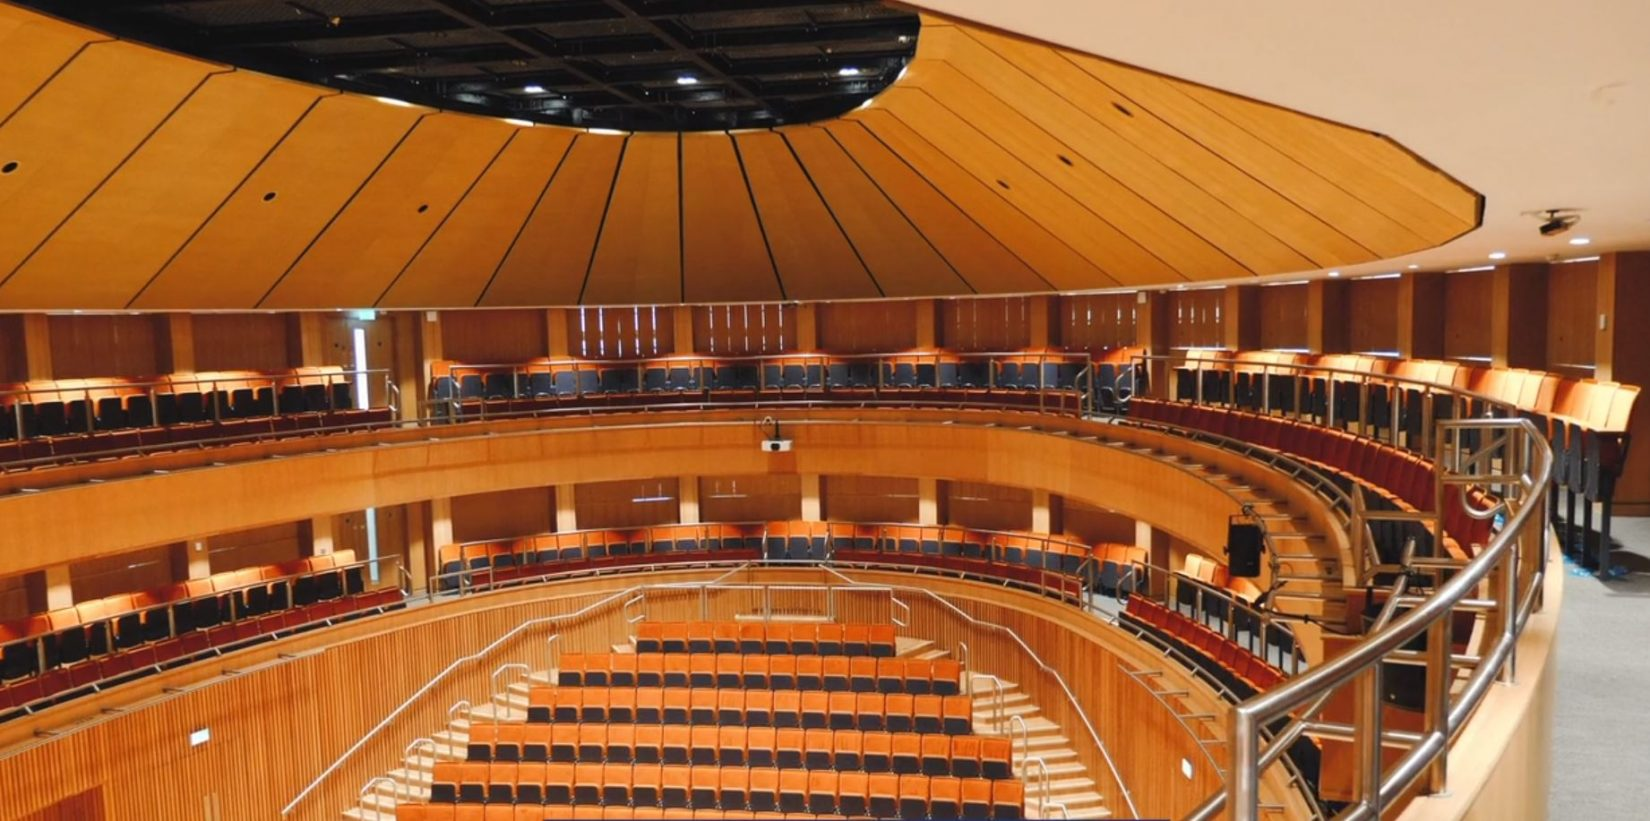 Interior of Olivier Hall at St. Edward's School in Oxford. The oval shaped hall features a 1060.25 ft2 SkyDeck tension wire grid.